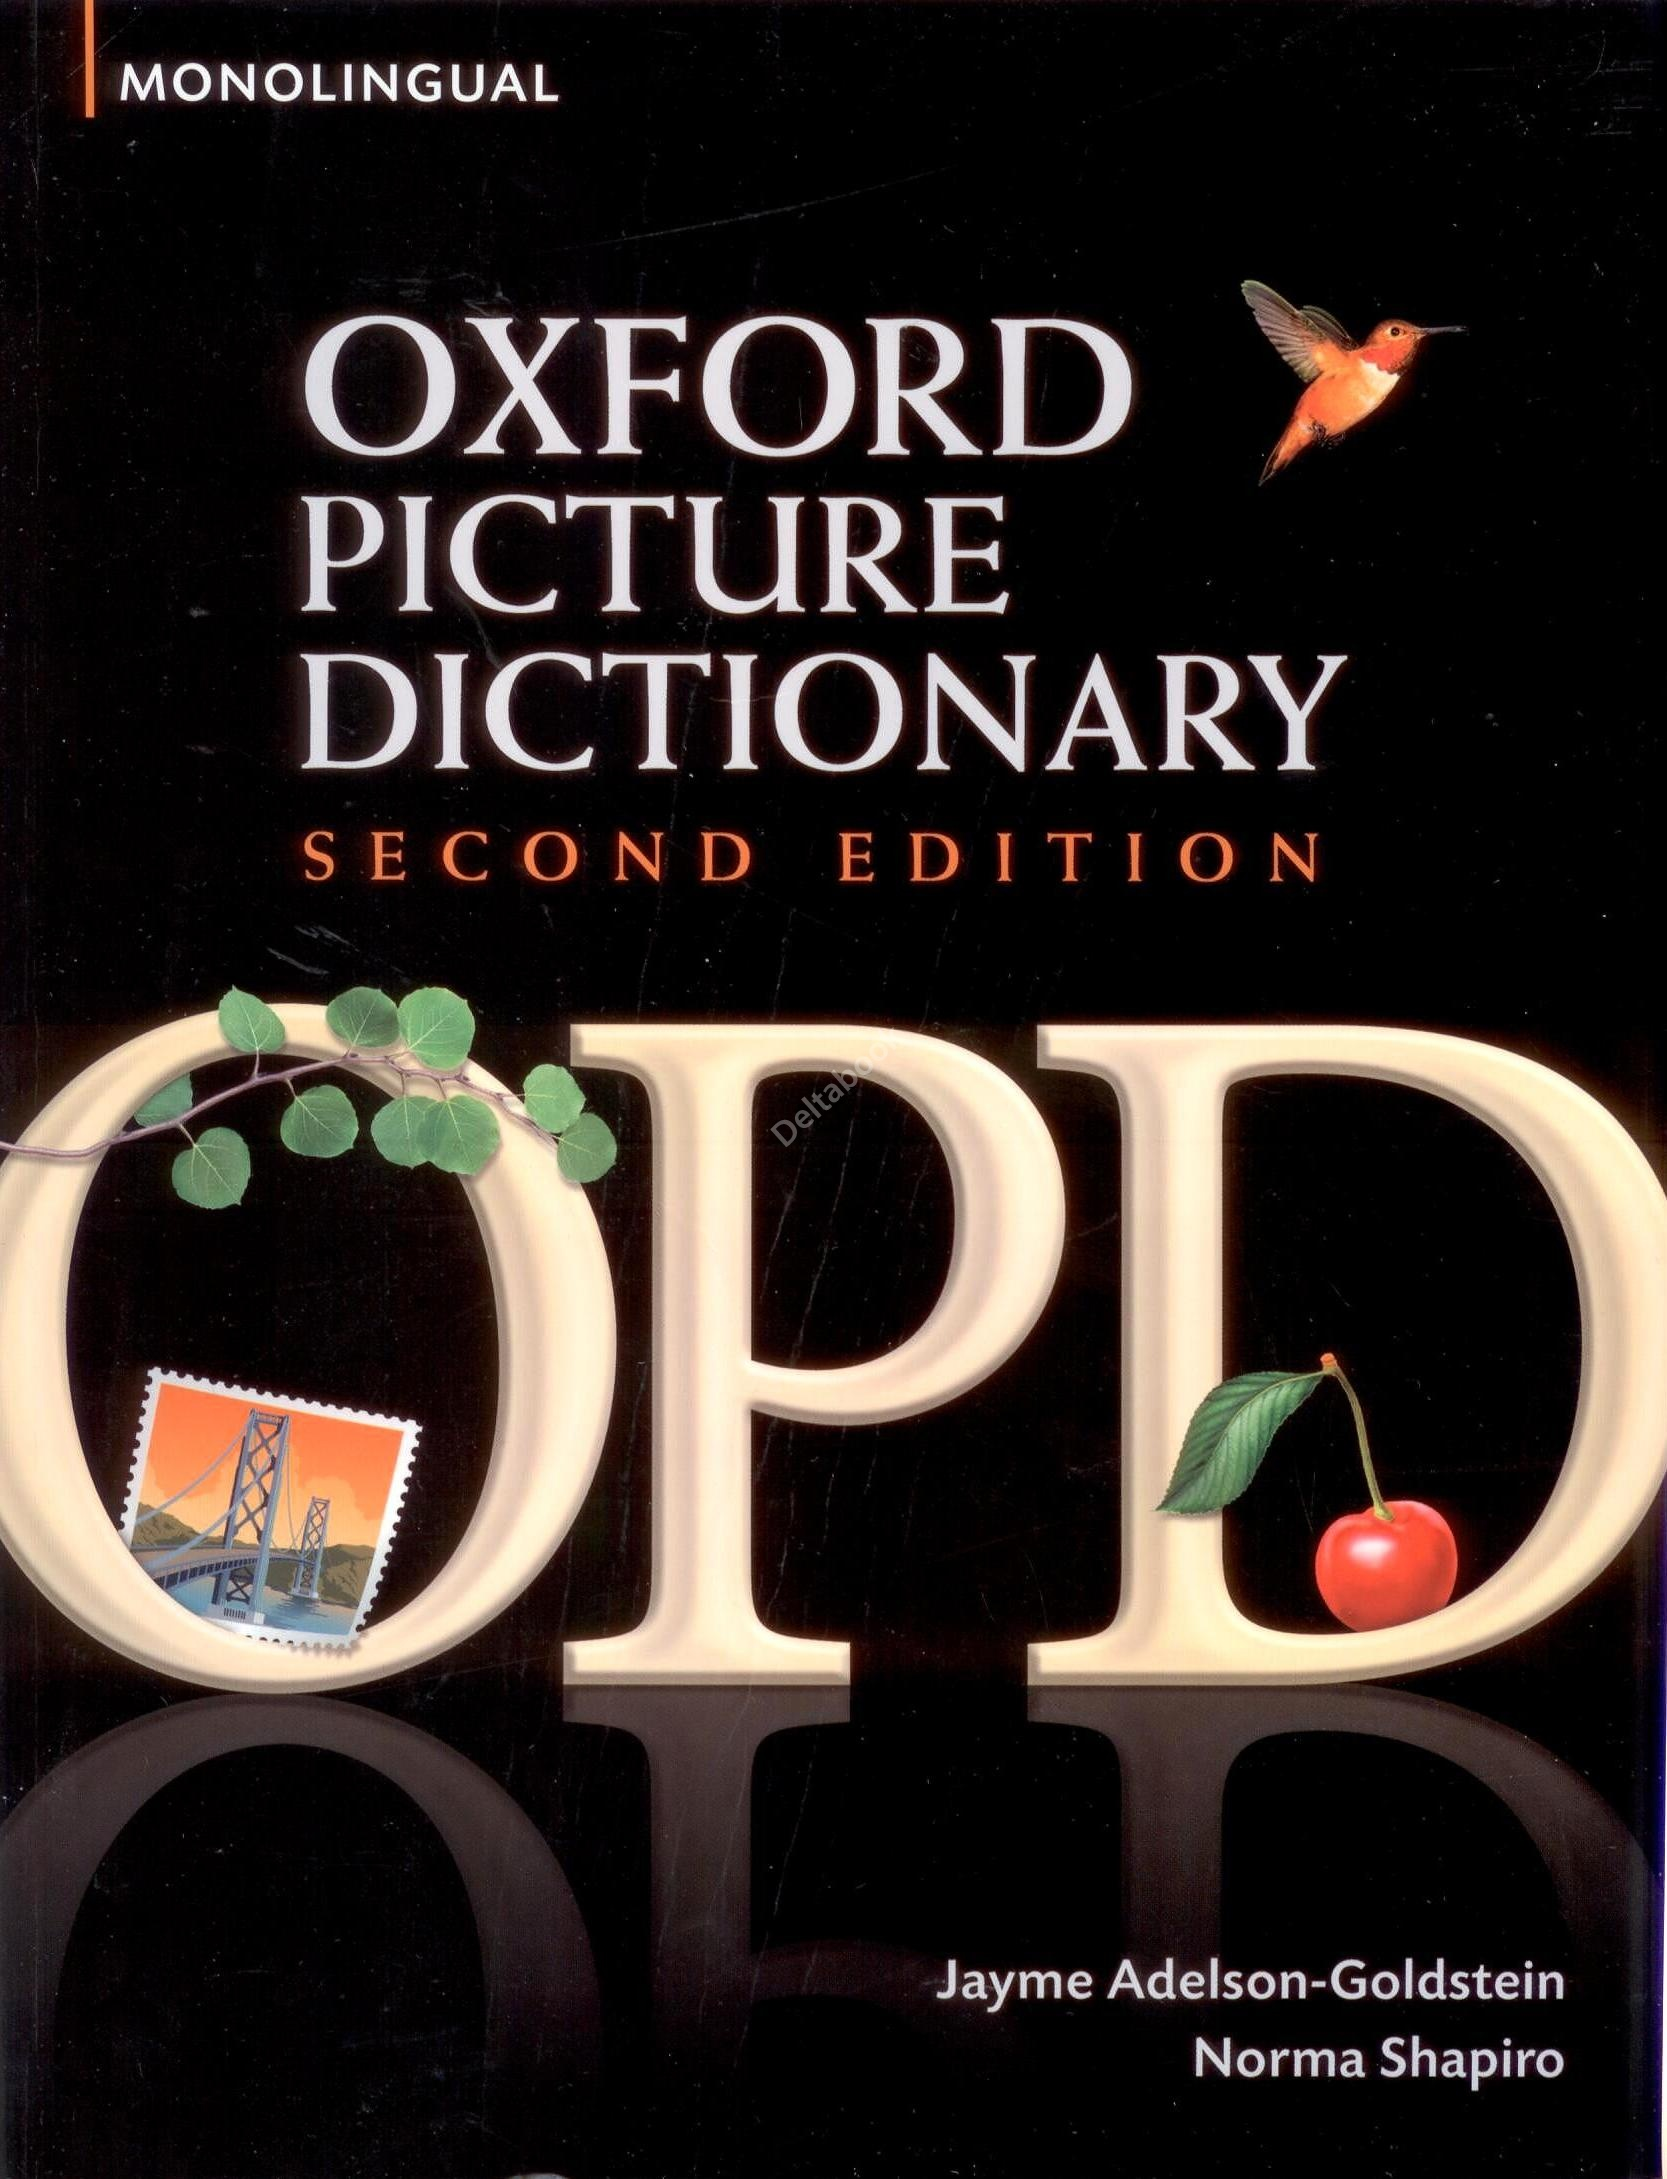 Oxford Picture Dictionary Monolingual (2nd Edition)